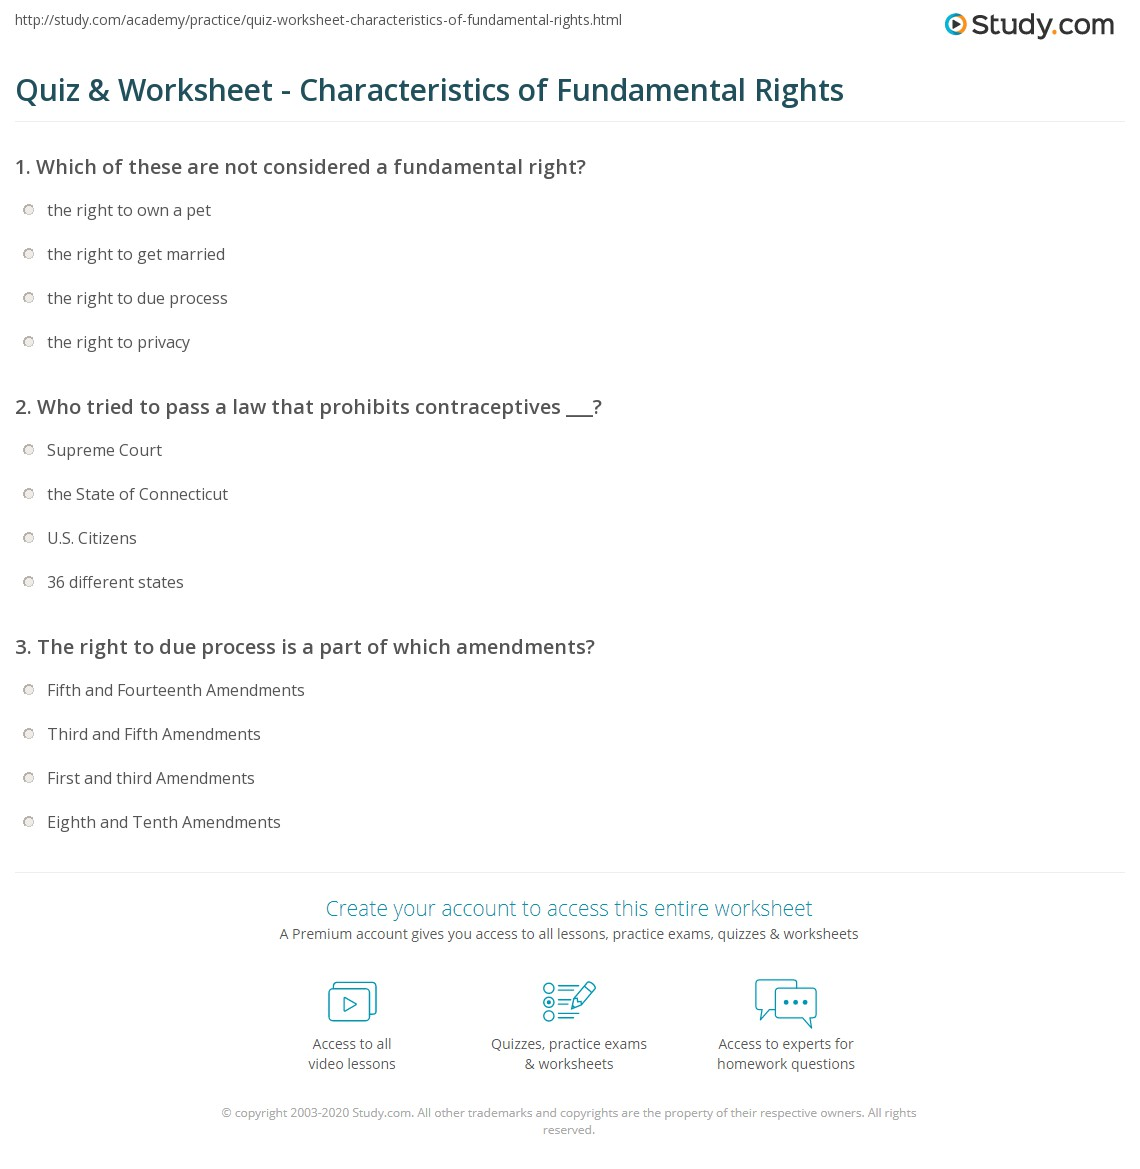 Aldiablosus  Outstanding Quiz Amp Worksheet  Characteristics Of Fundamental Rights  Studycom With Exquisite Print What Are Fundamental Rights  Definition Types Amp Features Worksheet With Astonishing General Music Worksheets Also Phonic Worksheets For First Grade In Addition Free Printable Noun Worksheets And Investment Property Worksheet As Well As Owl Pellet Lab Worksheet Additionally Worksheet For Kindergarten Reading From Studycom With Aldiablosus  Exquisite Quiz Amp Worksheet  Characteristics Of Fundamental Rights  Studycom With Astonishing Print What Are Fundamental Rights  Definition Types Amp Features Worksheet And Outstanding General Music Worksheets Also Phonic Worksheets For First Grade In Addition Free Printable Noun Worksheets From Studycom